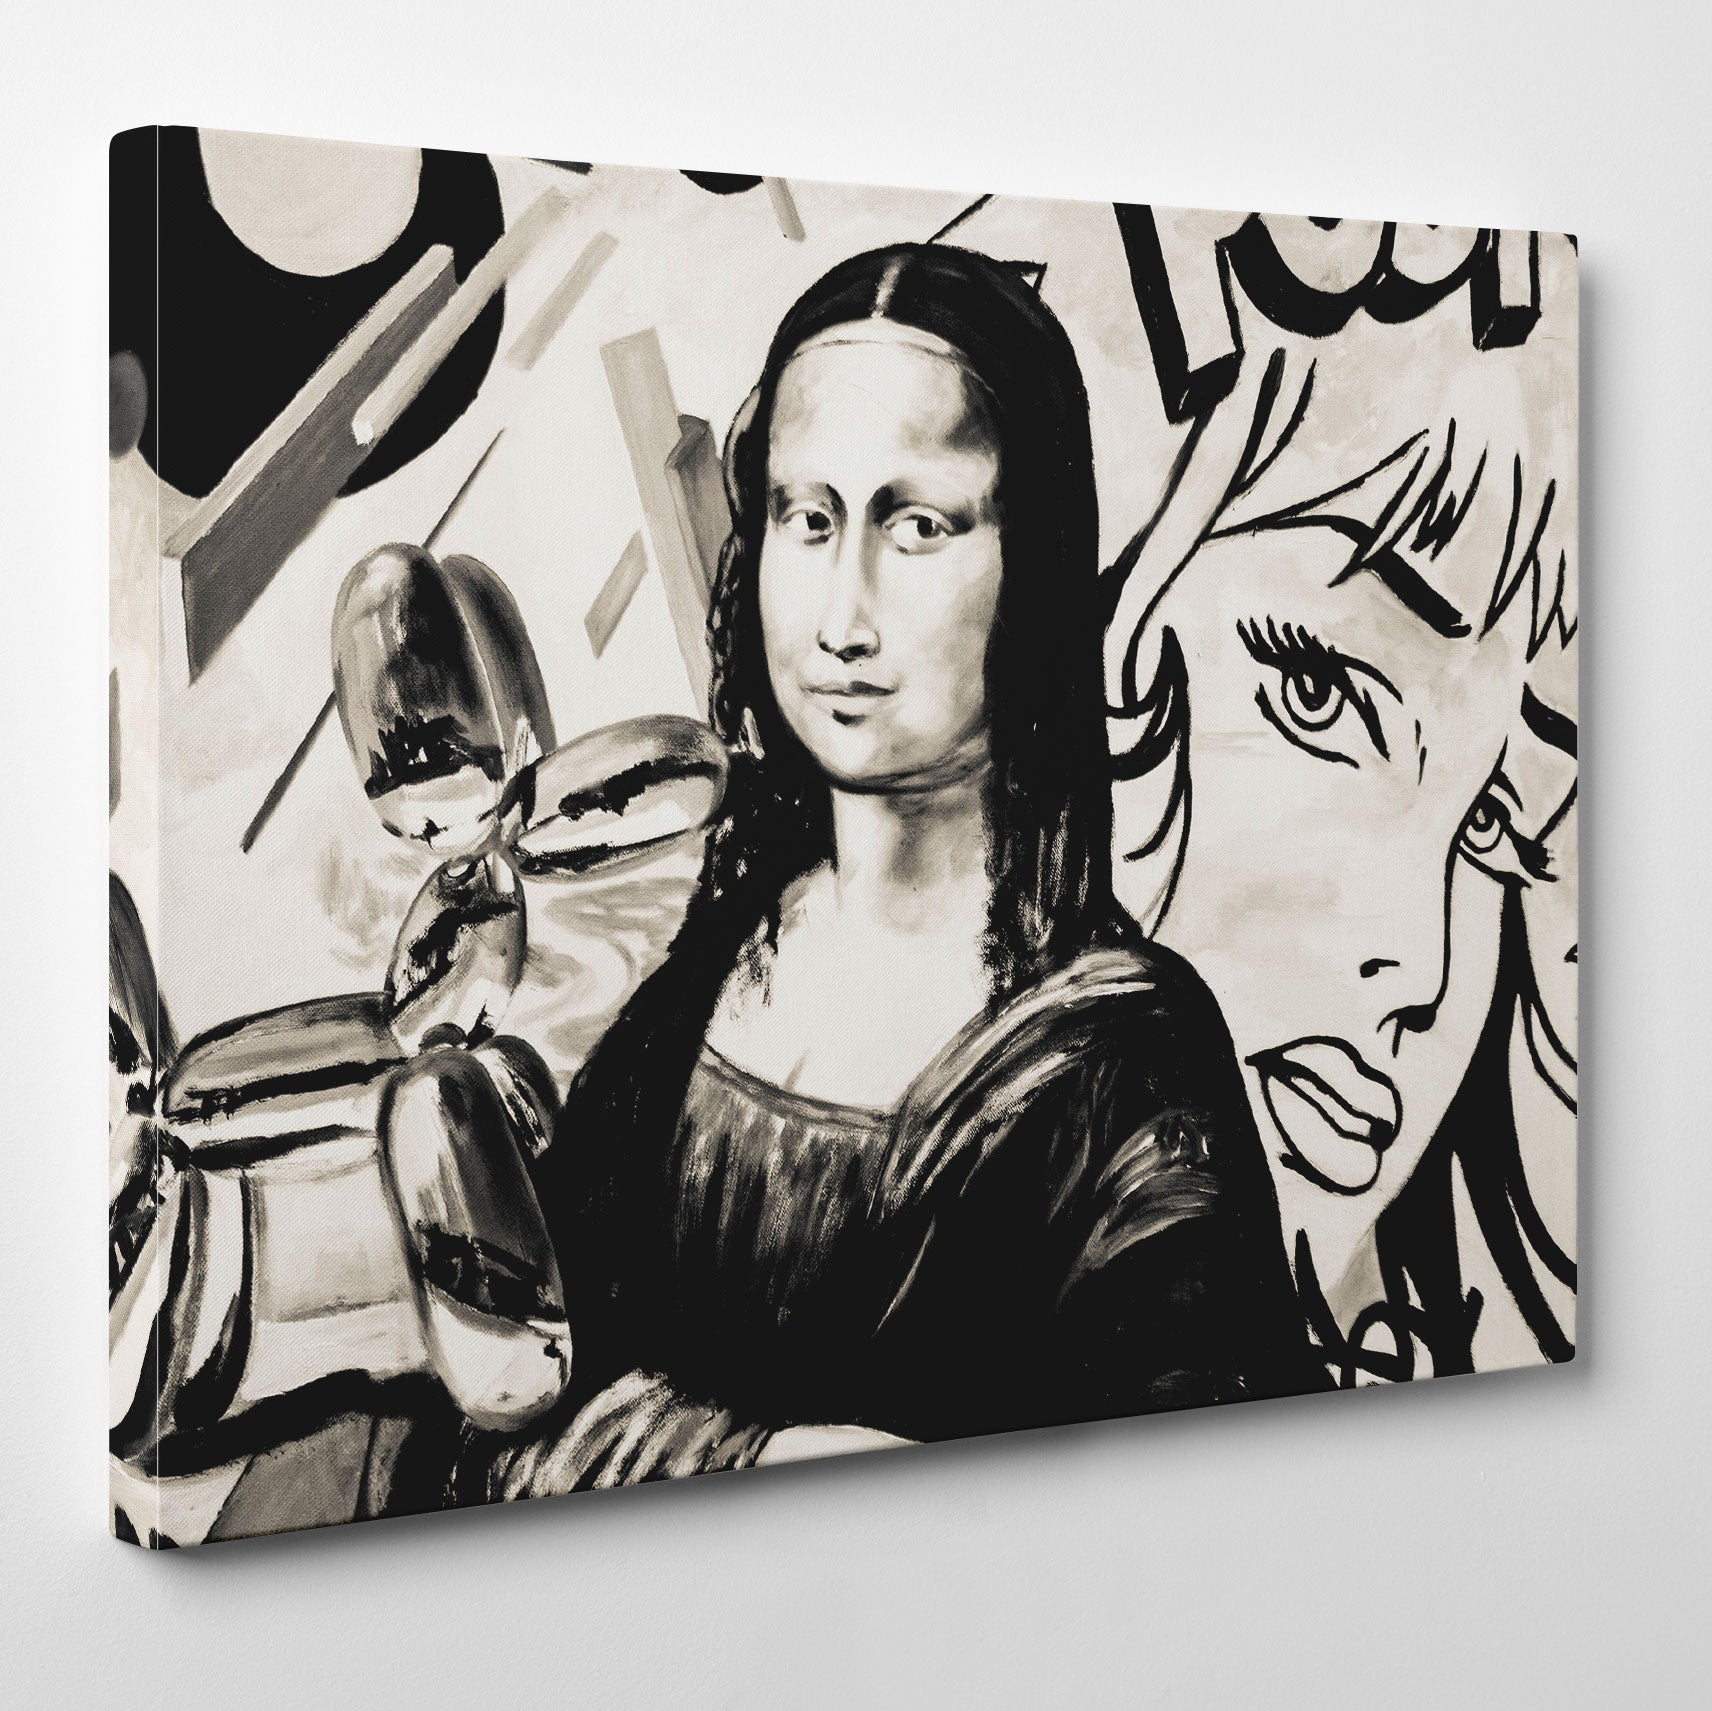 Street art style canvas print of a black and white Mona Lisa's painting, with arts mixture - side view